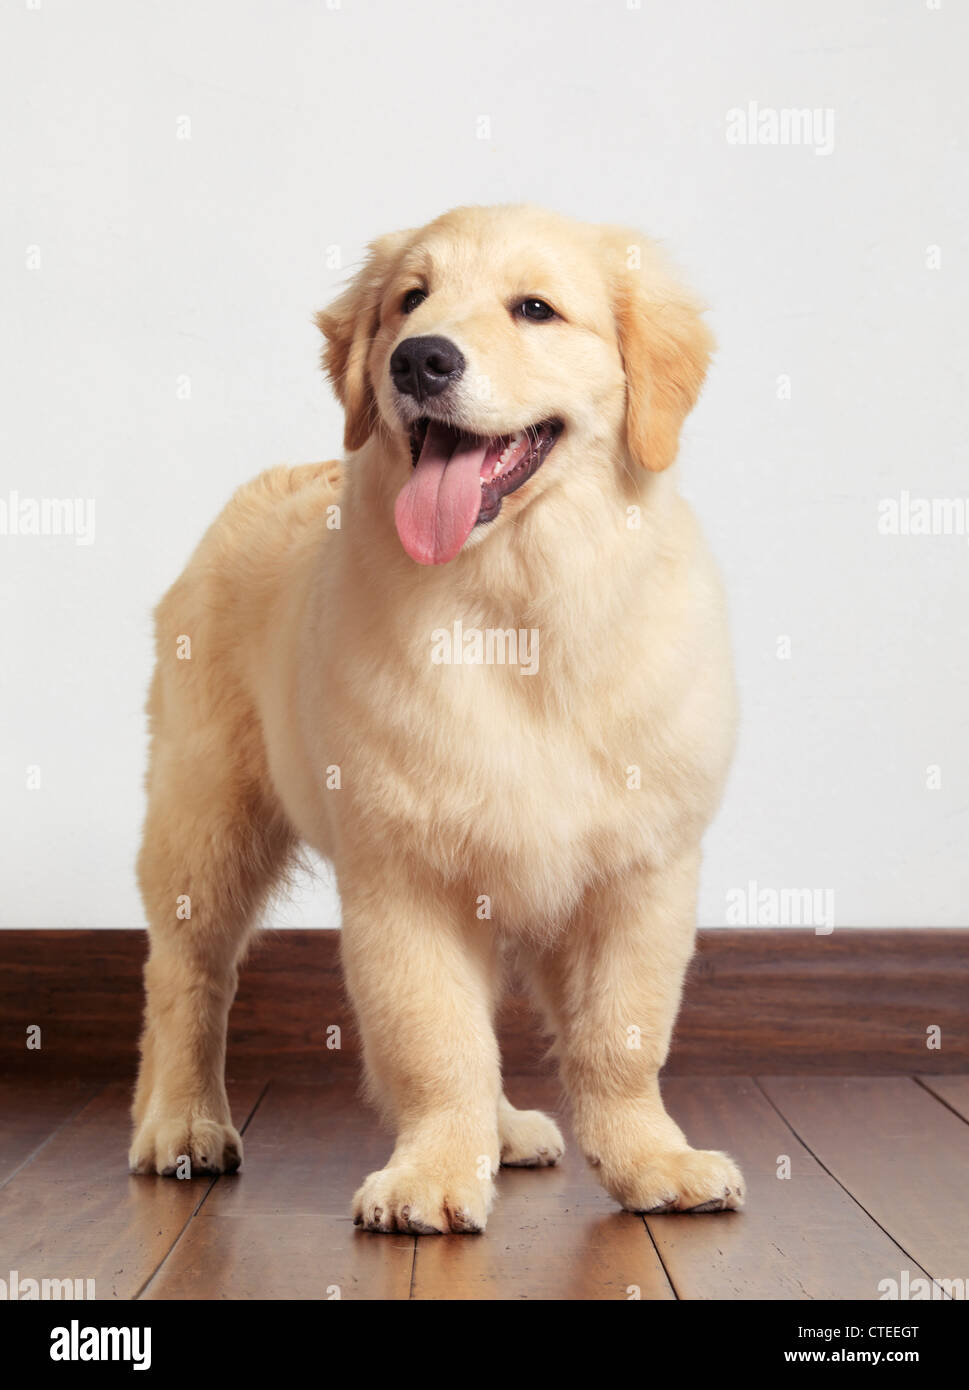 Golden Retriever Four Month Old Puppy Stock Photo 49491256 Alamy